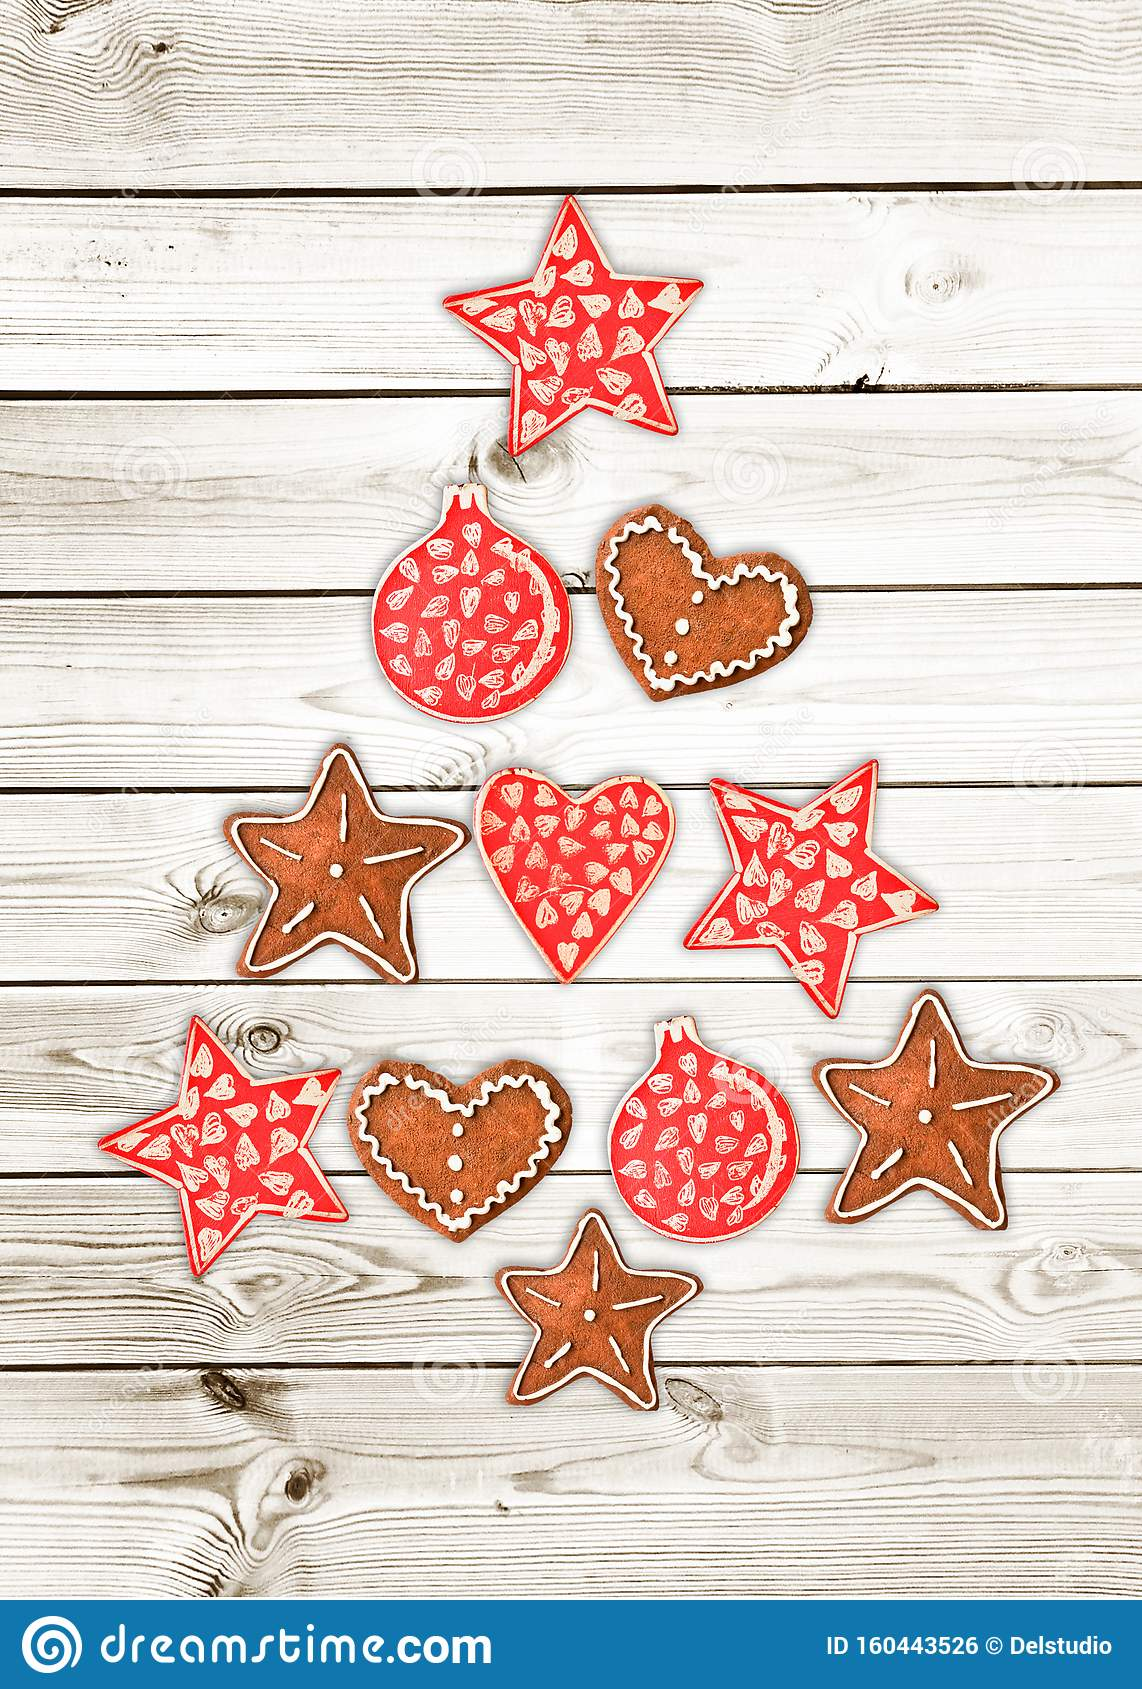 Red And White Christmas Tree Made Of Wooden Rustic Ornaments On White Wooden Planks Background Greeting Card Stock Photo Image Of Flat Season 160443526